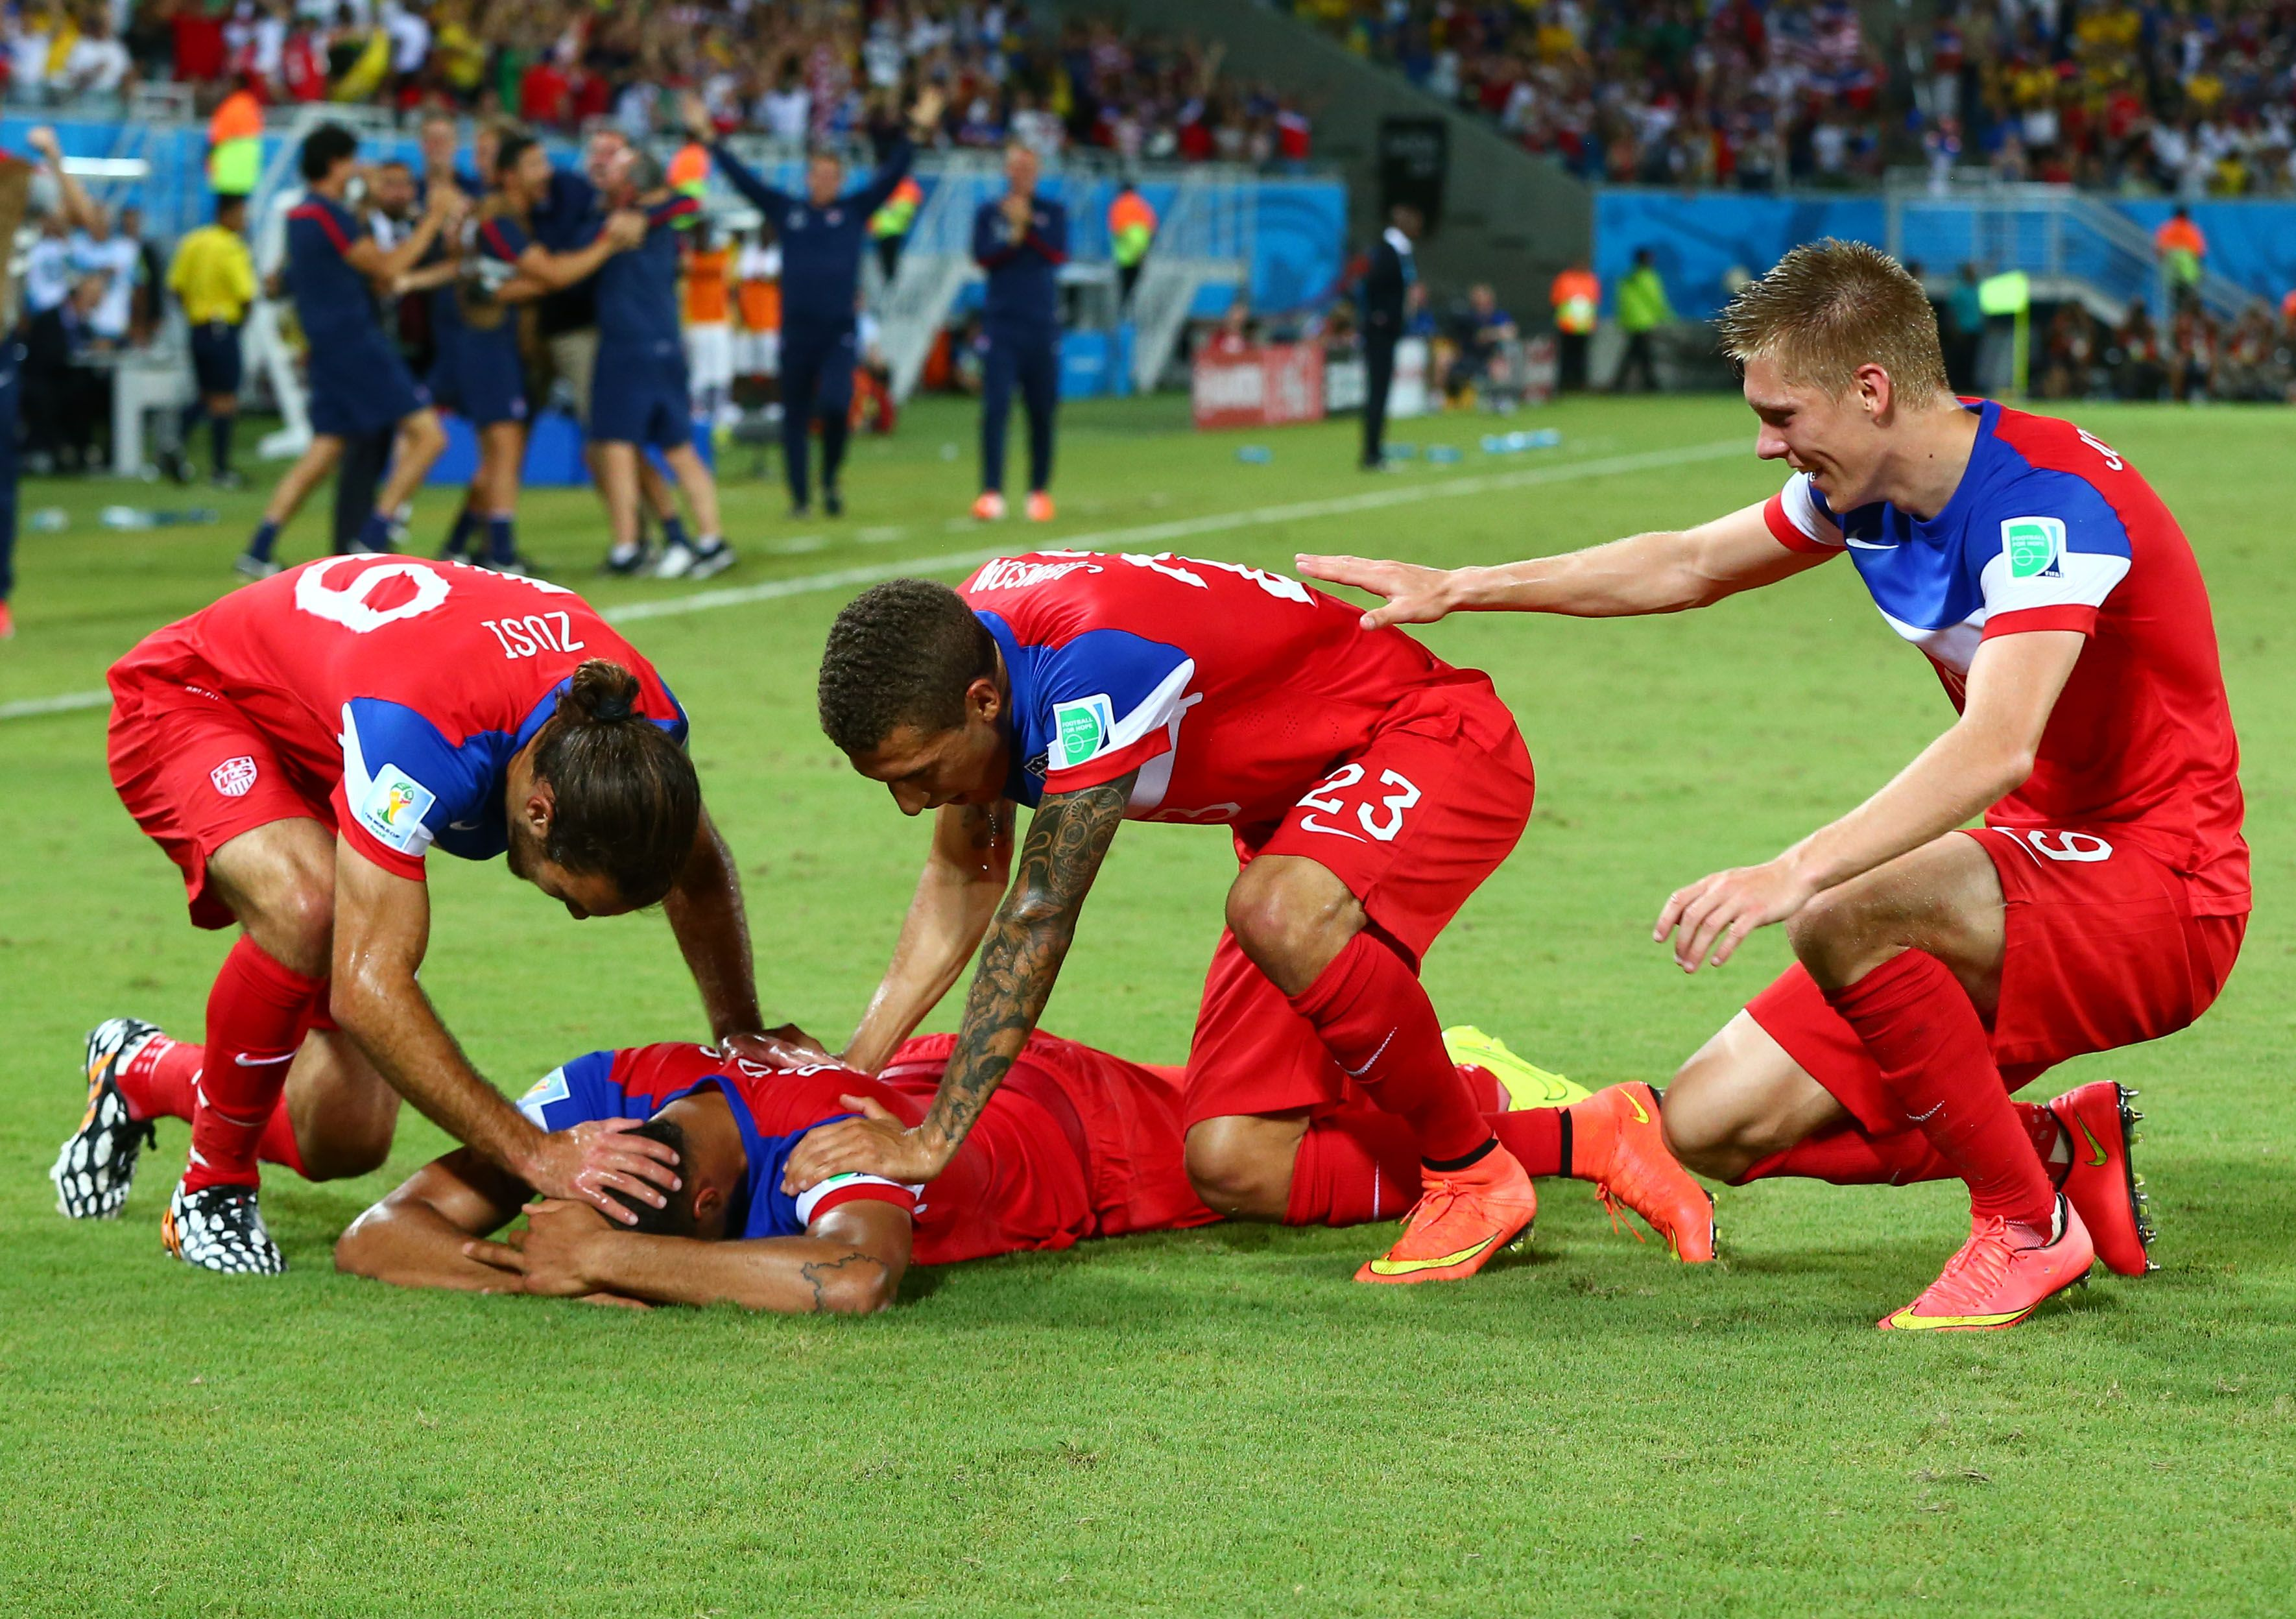 Sigurdsson strike stuns liverpool at anfield yahoo sports - John Brooks U S Stun Ghana With Late Winning Goal In World Cup